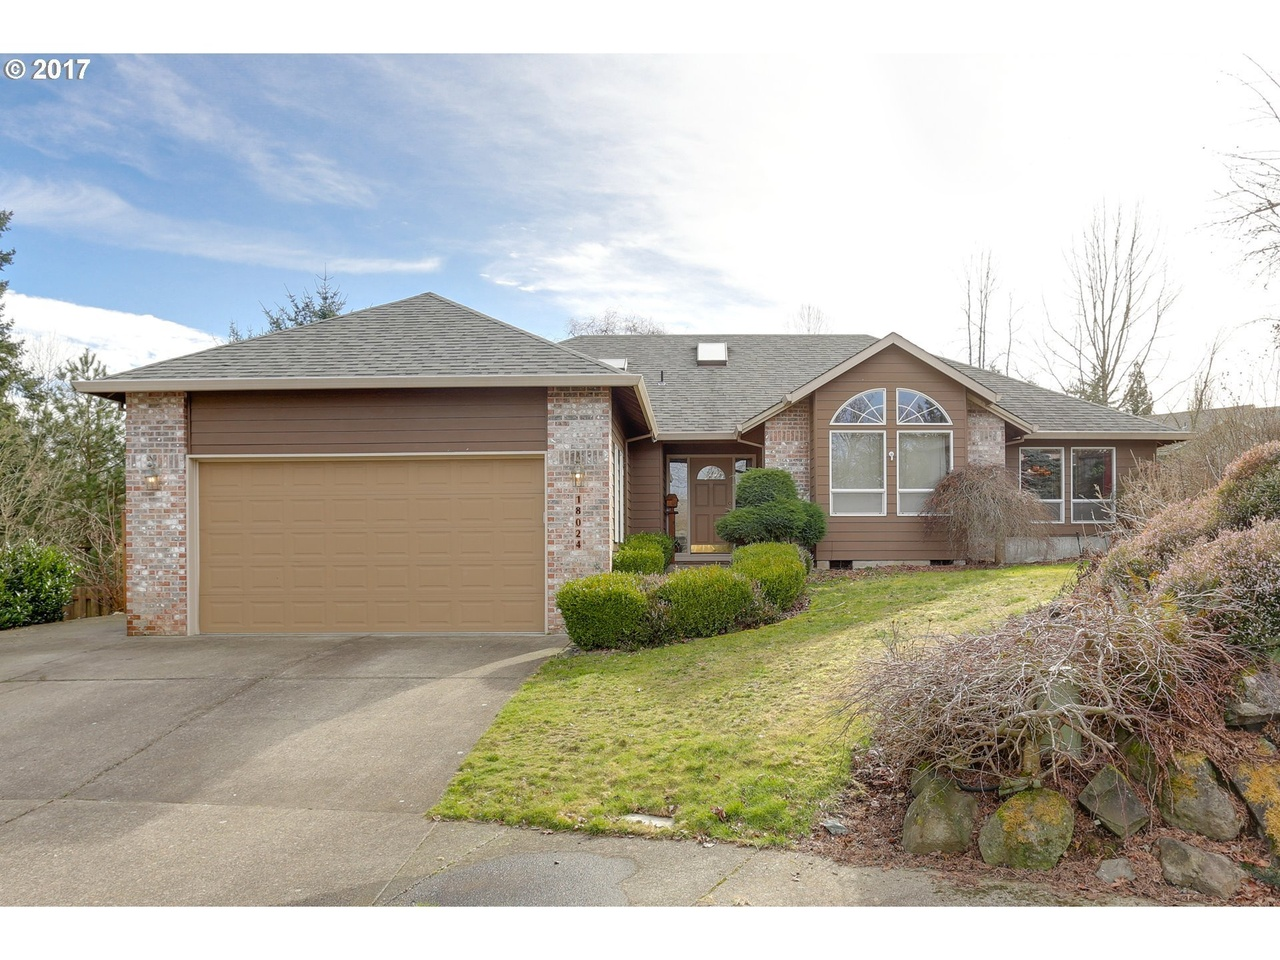 18024 Chickaree Dr, Oregon City, OR 97045   MLS# 17085336   Redfin